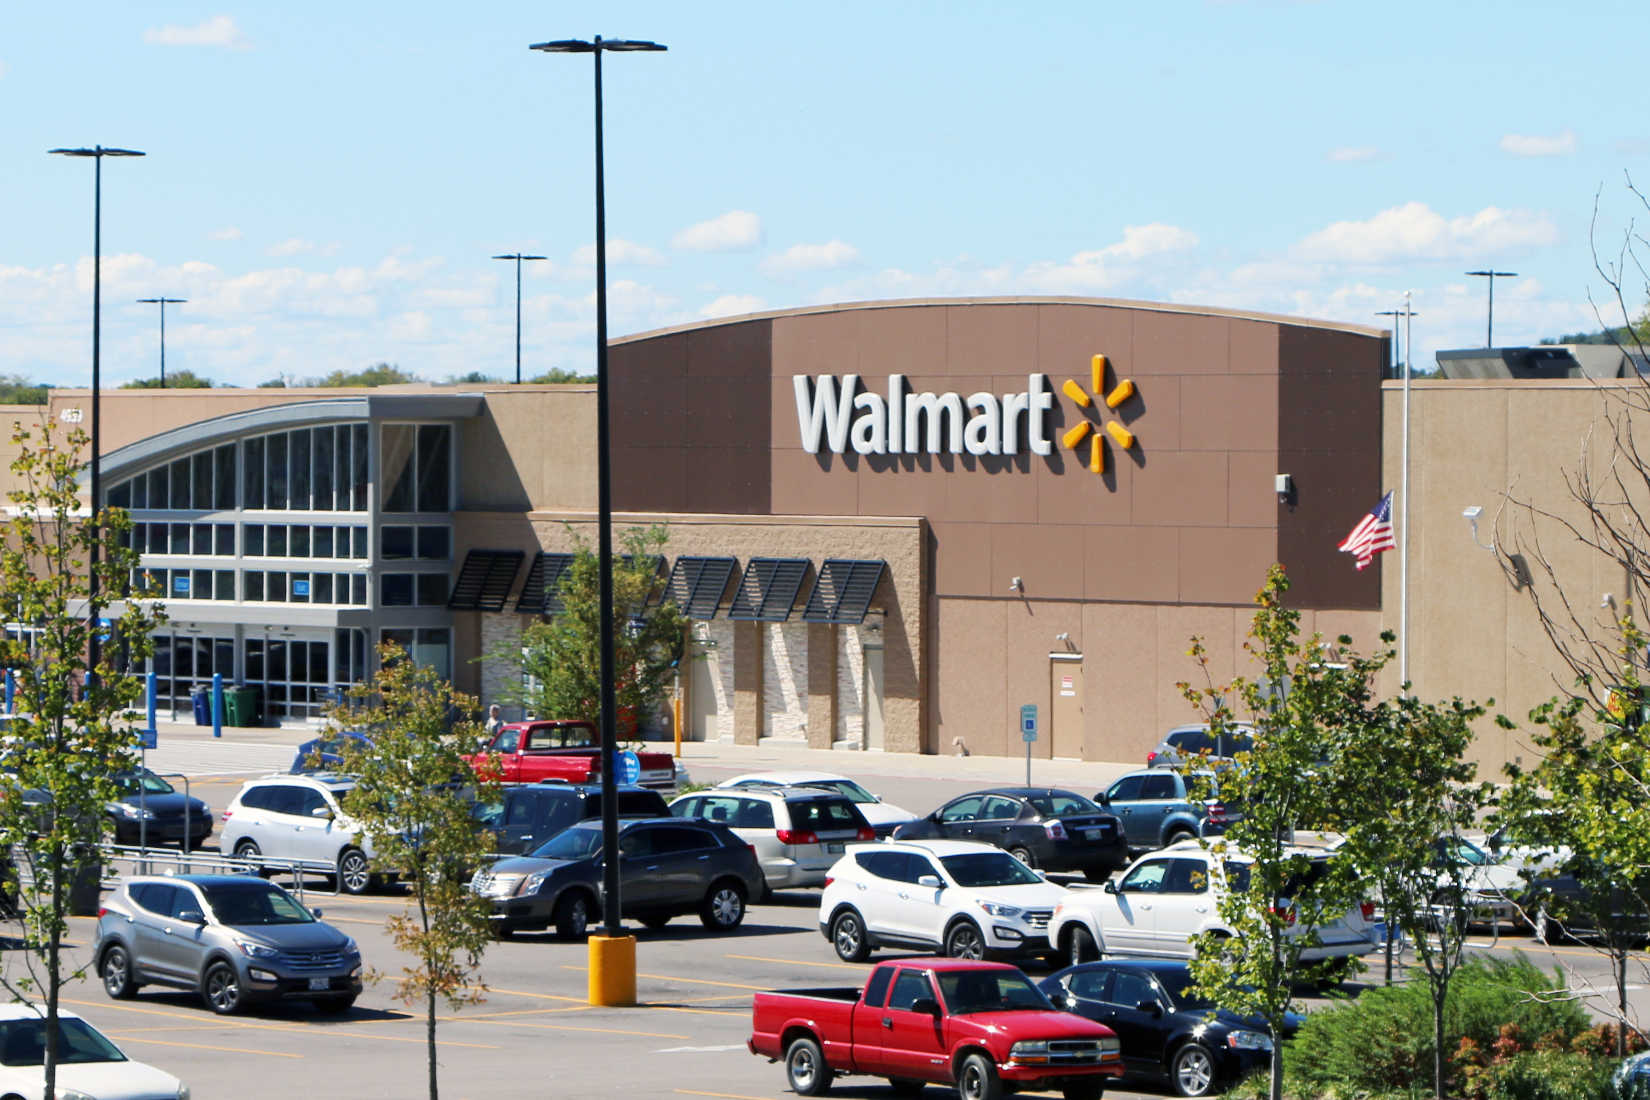 Walmart's Alleged Action a 'Slap in the Face' to Gun Owners